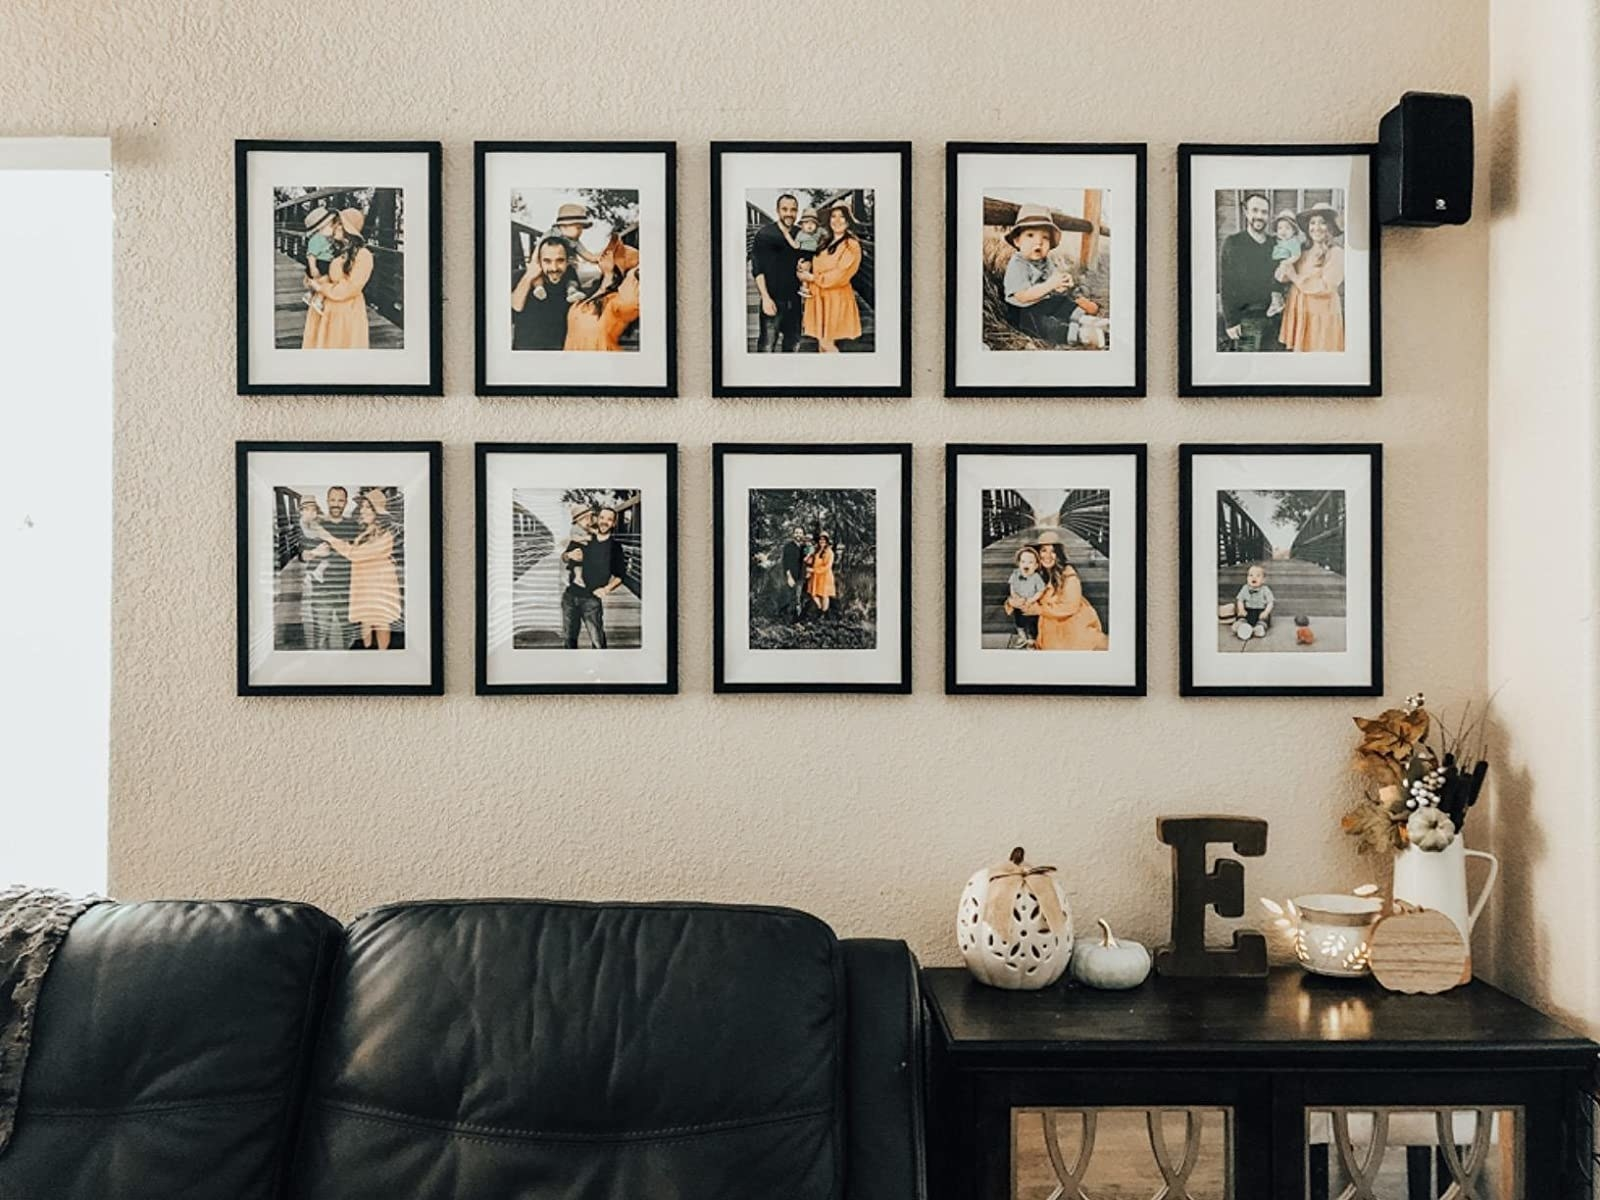 Reviewer's gallery wall created with black frames and white matting